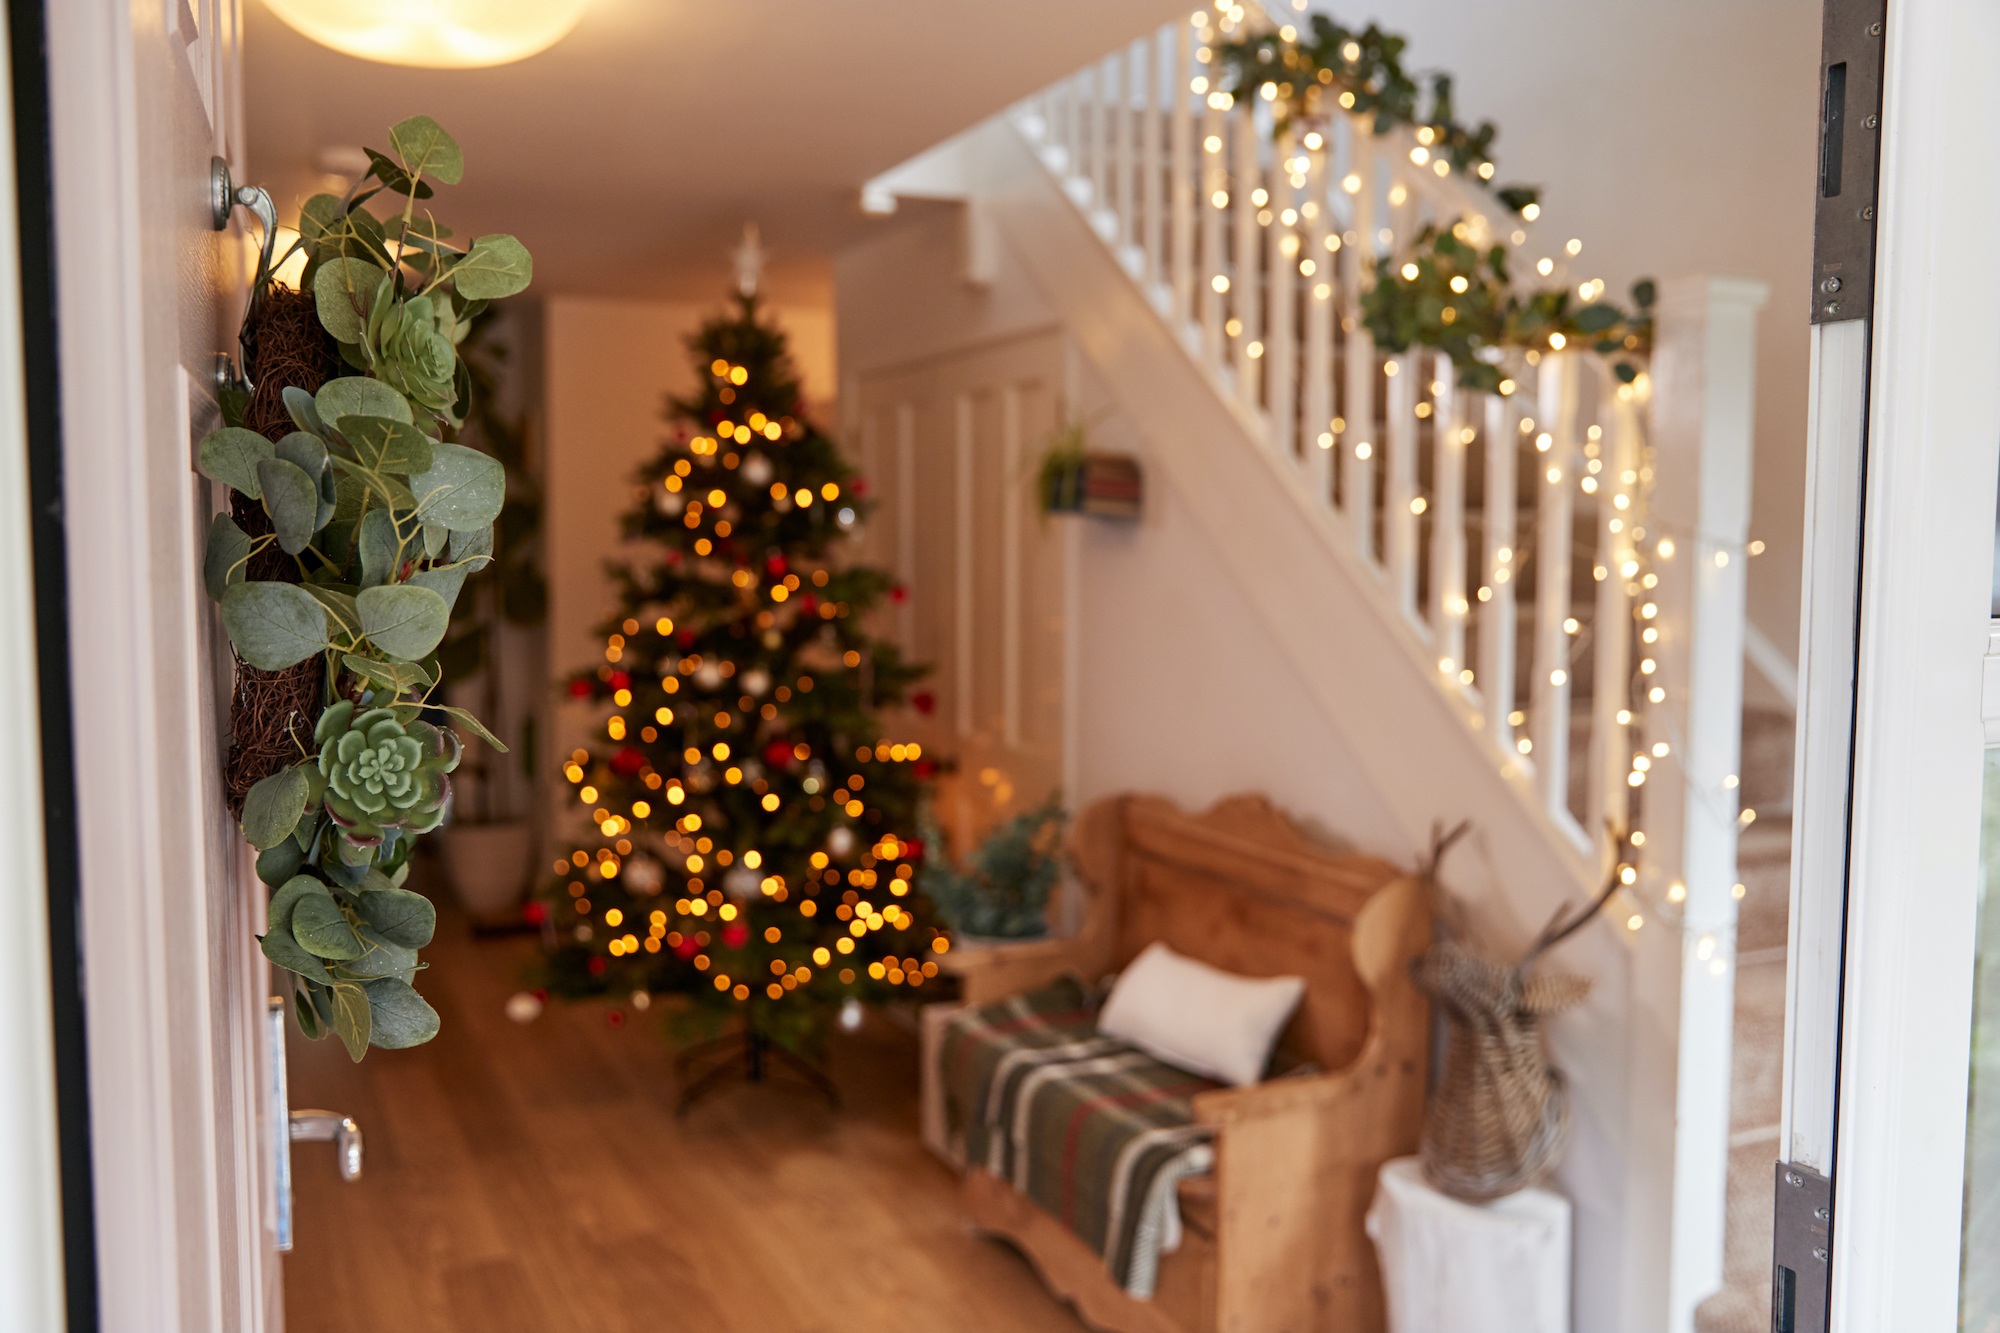 Where To Find The Best Deals On Christmas Decor Including Trees Download free christmas tree images. https autos yahoo com where best deals christmas decor 220814600 html